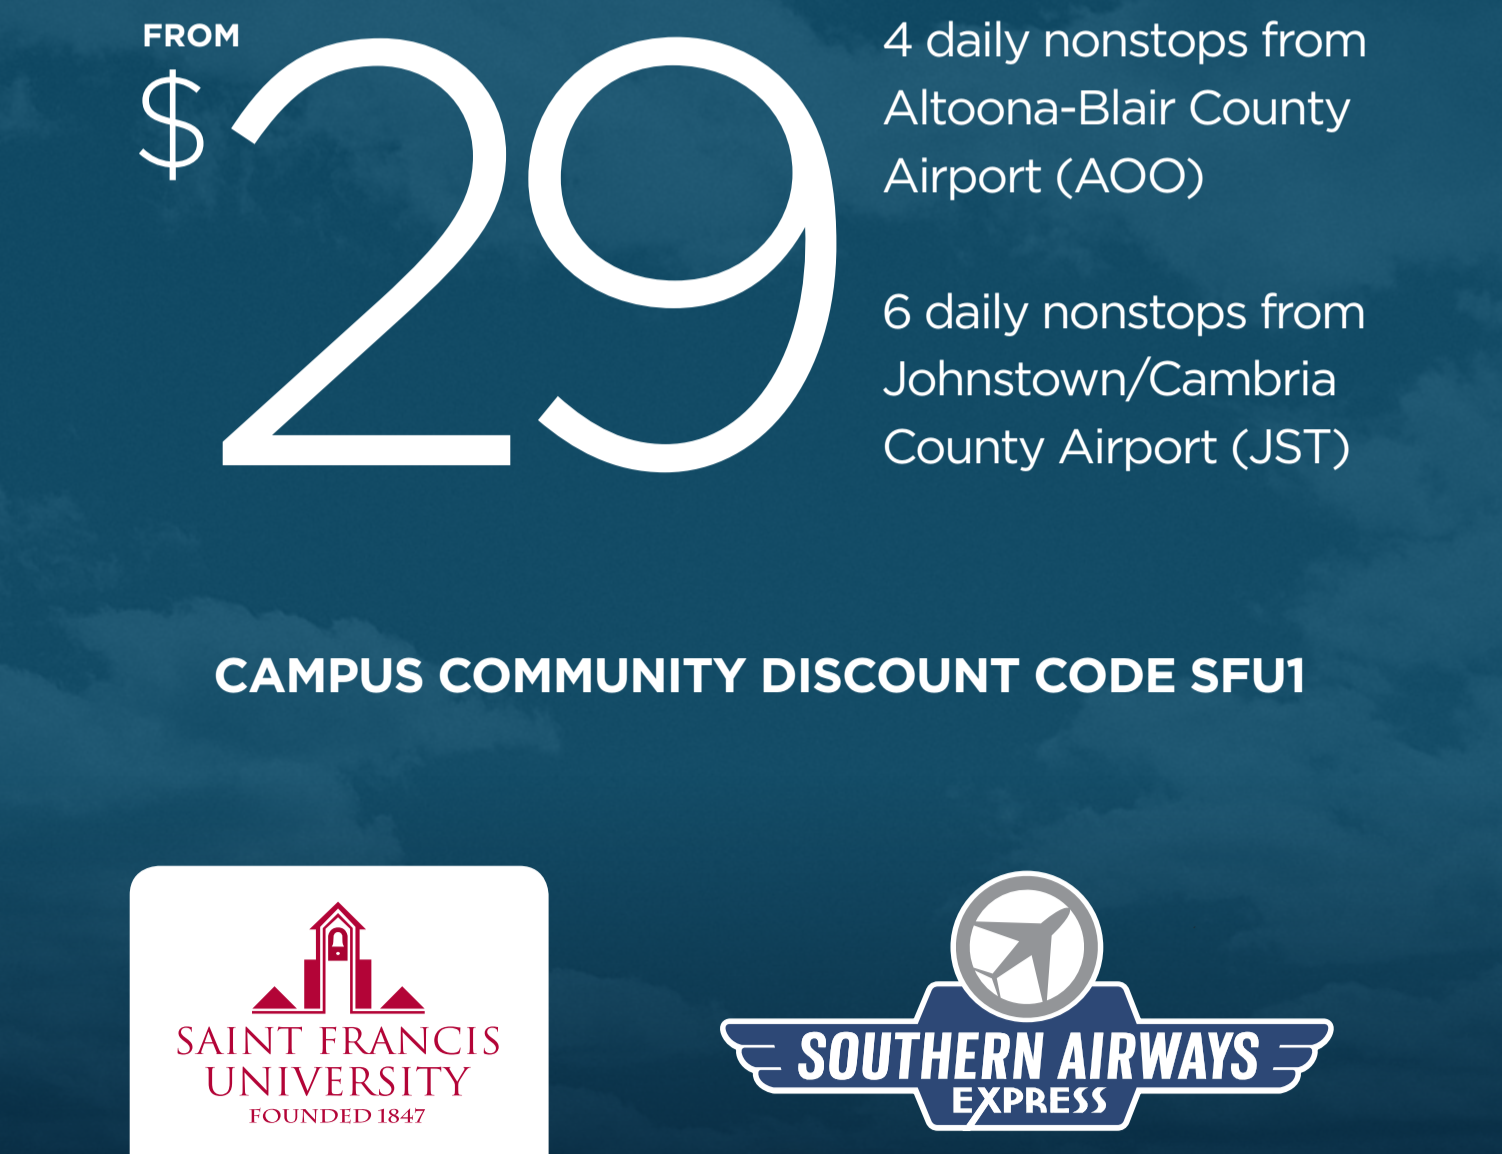 southern airways 2017 offer